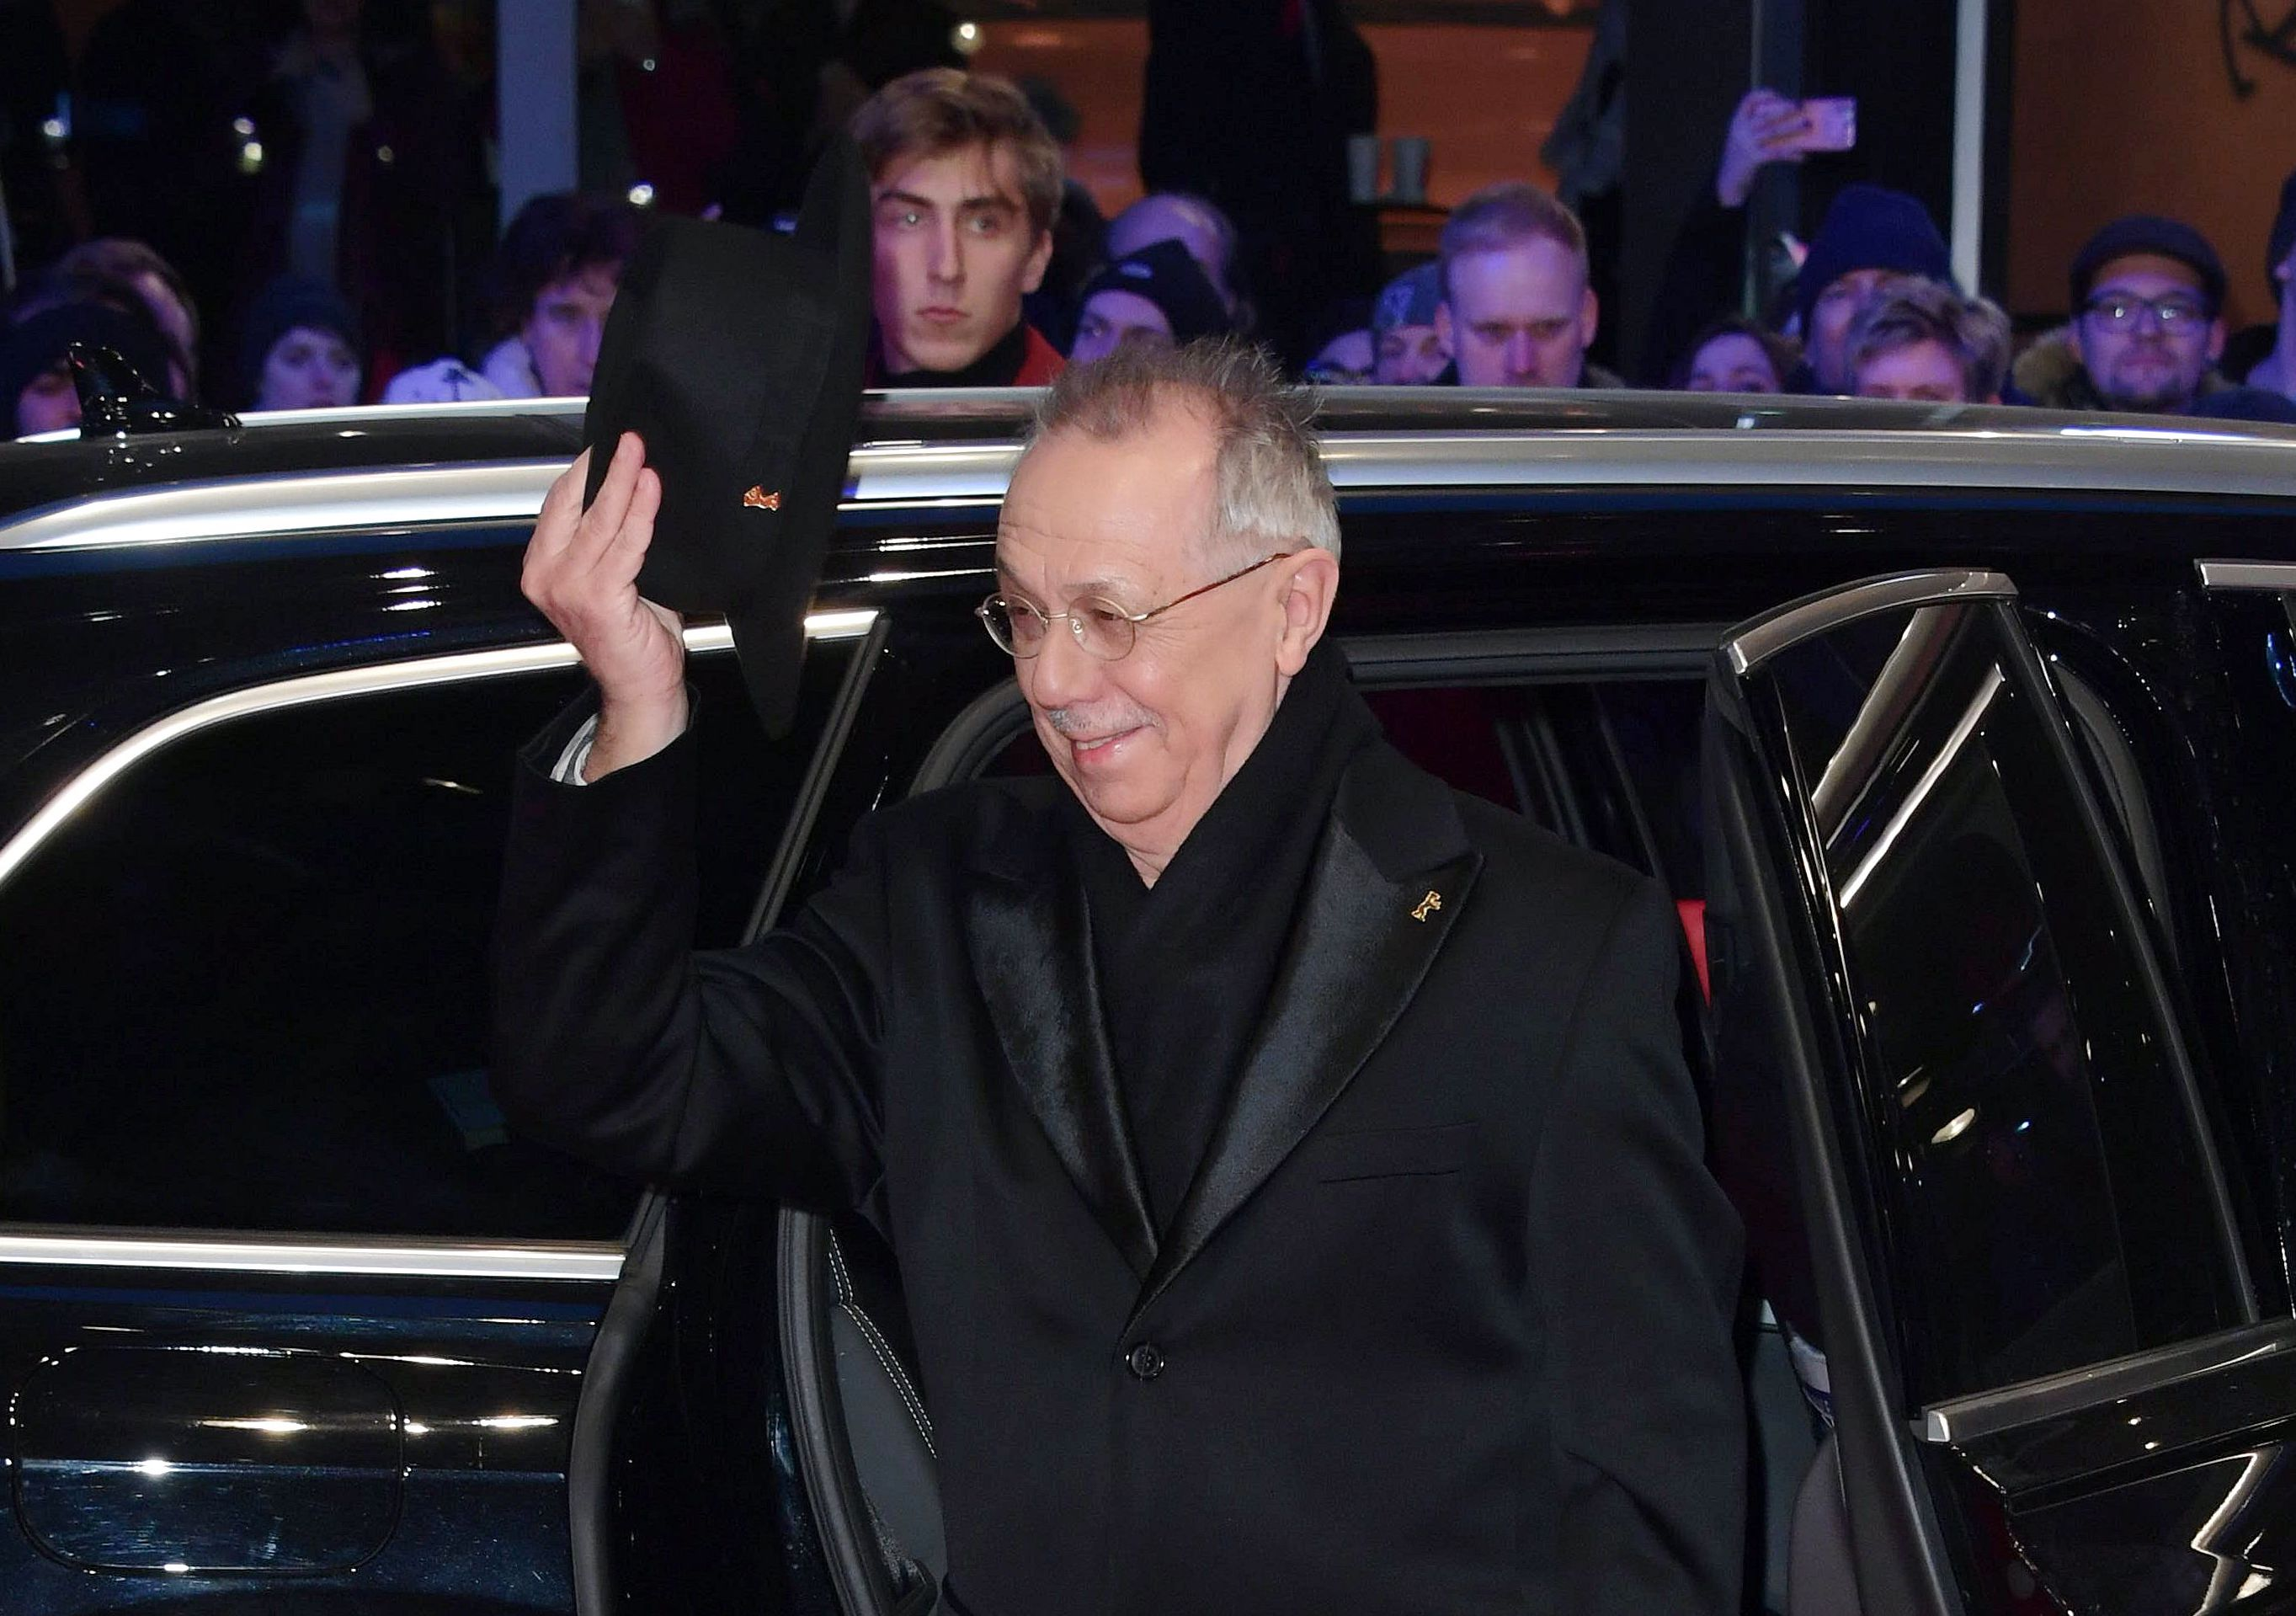 Director of the Festival Dieter Kosslick, gestures as he arrives at the red carpet for the opening ceremony of the 68th annual Berlin International Film Festival (Berlinale), in Berlin, Germany, 15 February 2018. The Berlinale runs from 15 to 25 February.Opening Ceremony - 68th Berlin Film Festival, Germany - 15 Feb 2018